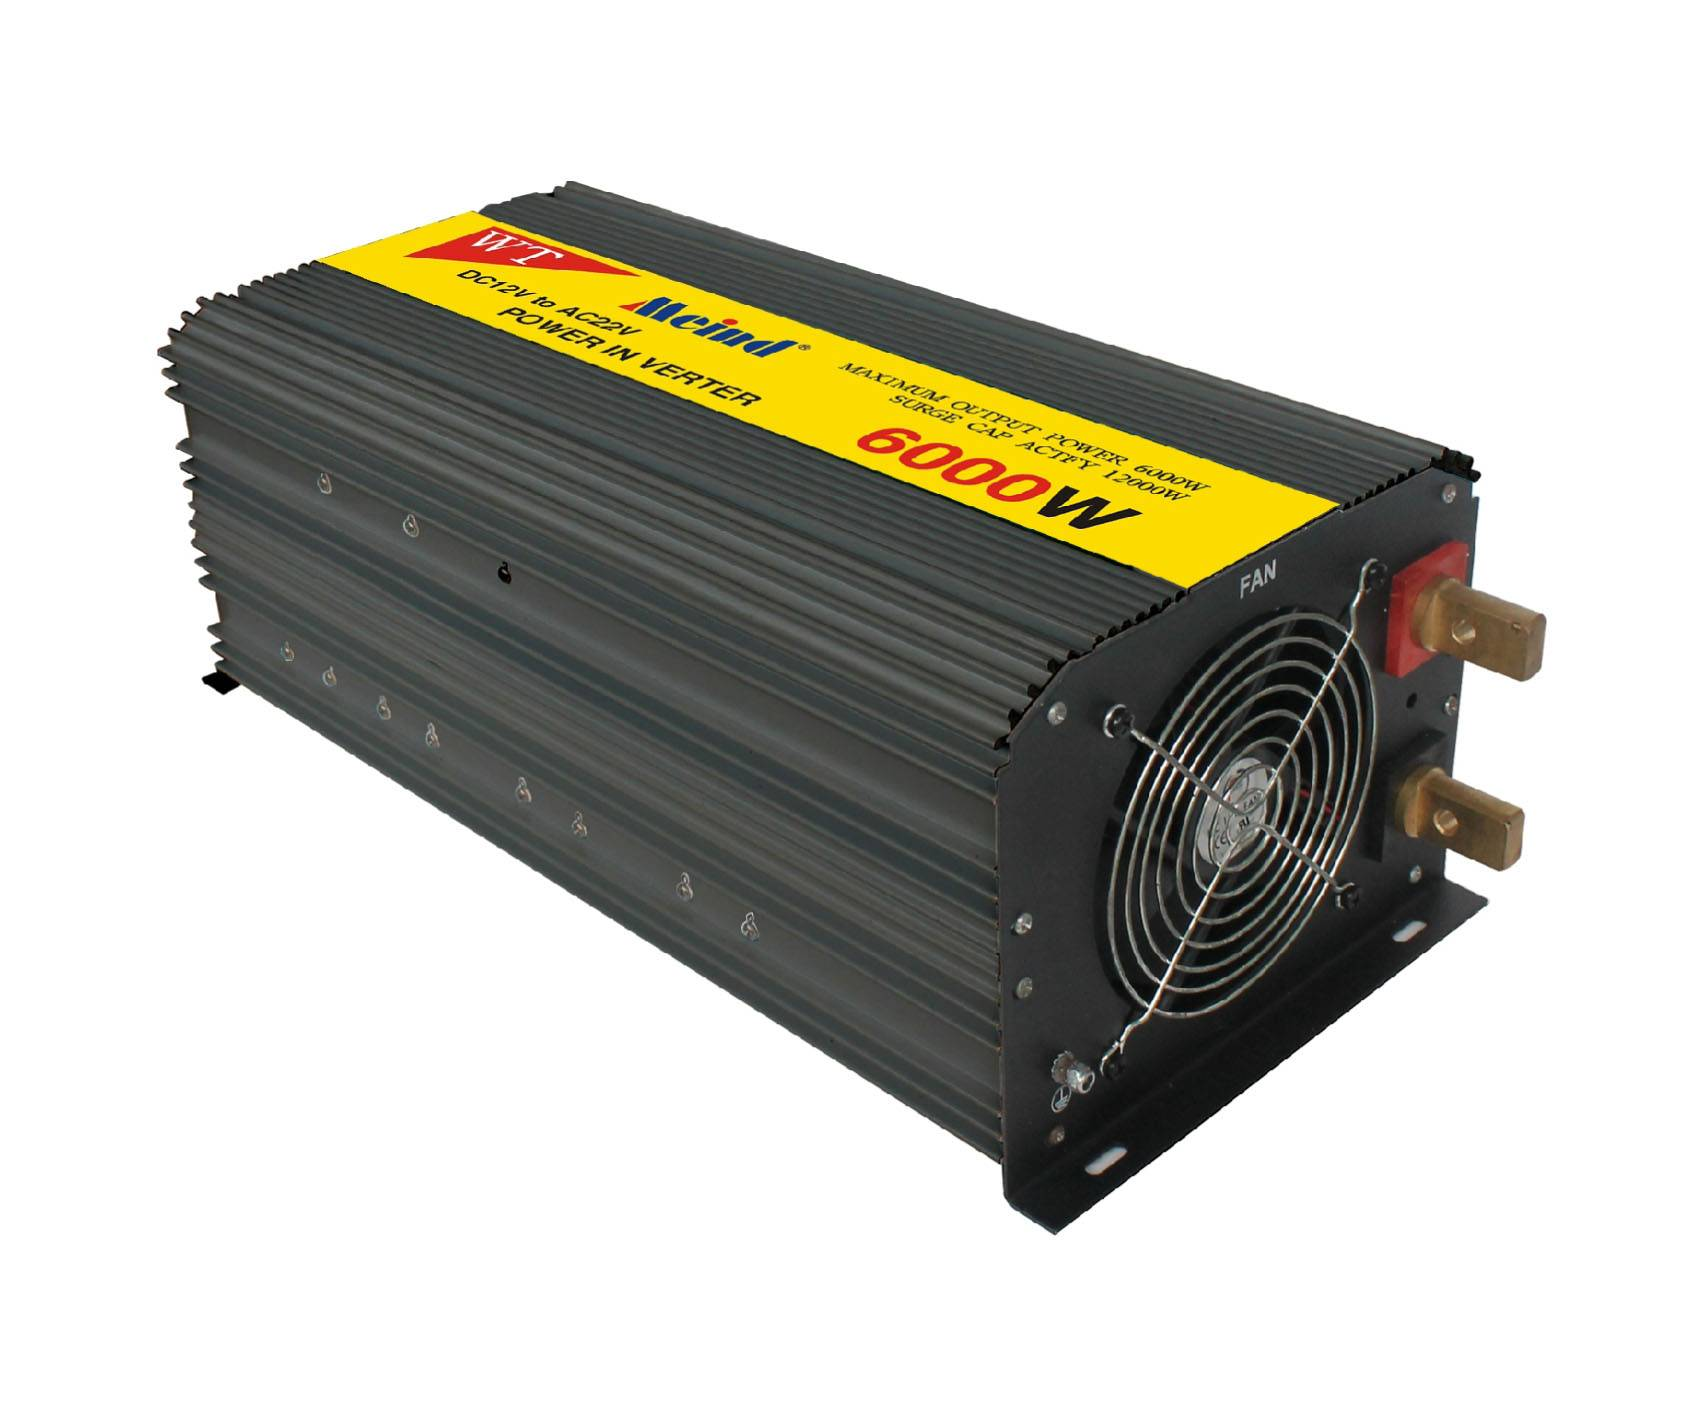 Meind Factory sell DC12V/24V/36V/48V/60V to AC100V-240V 300W-6000W all countries outlet inverter